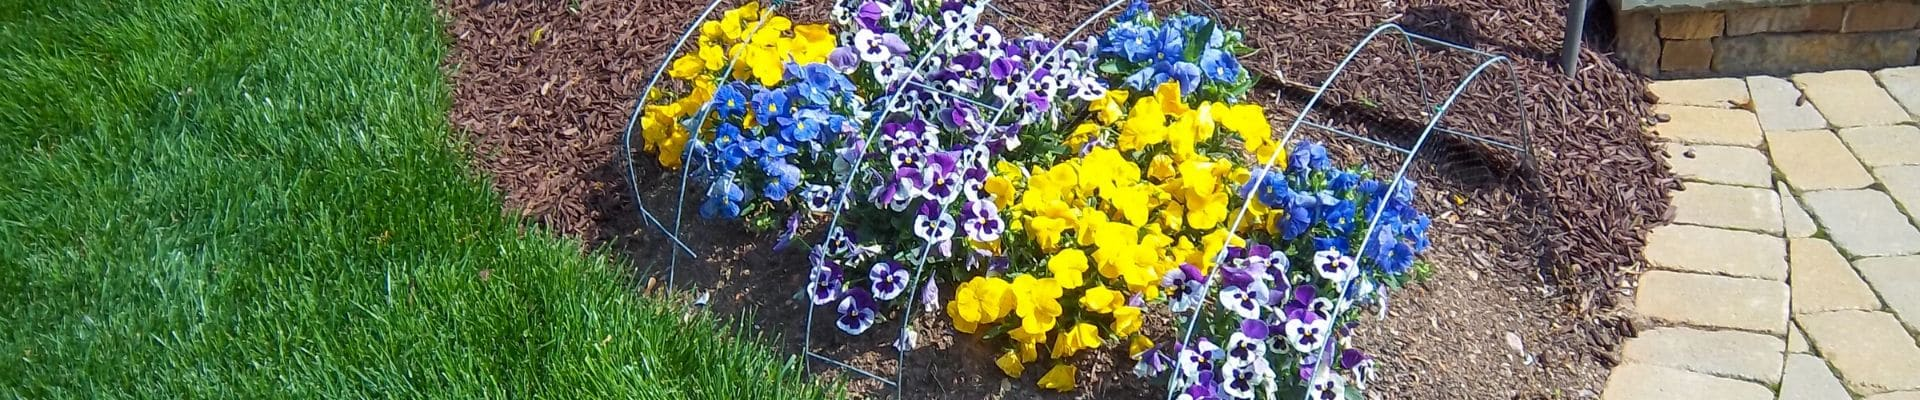 Seasonal flowers with protective cage installed by ECM Landscaping and Lawn Care.